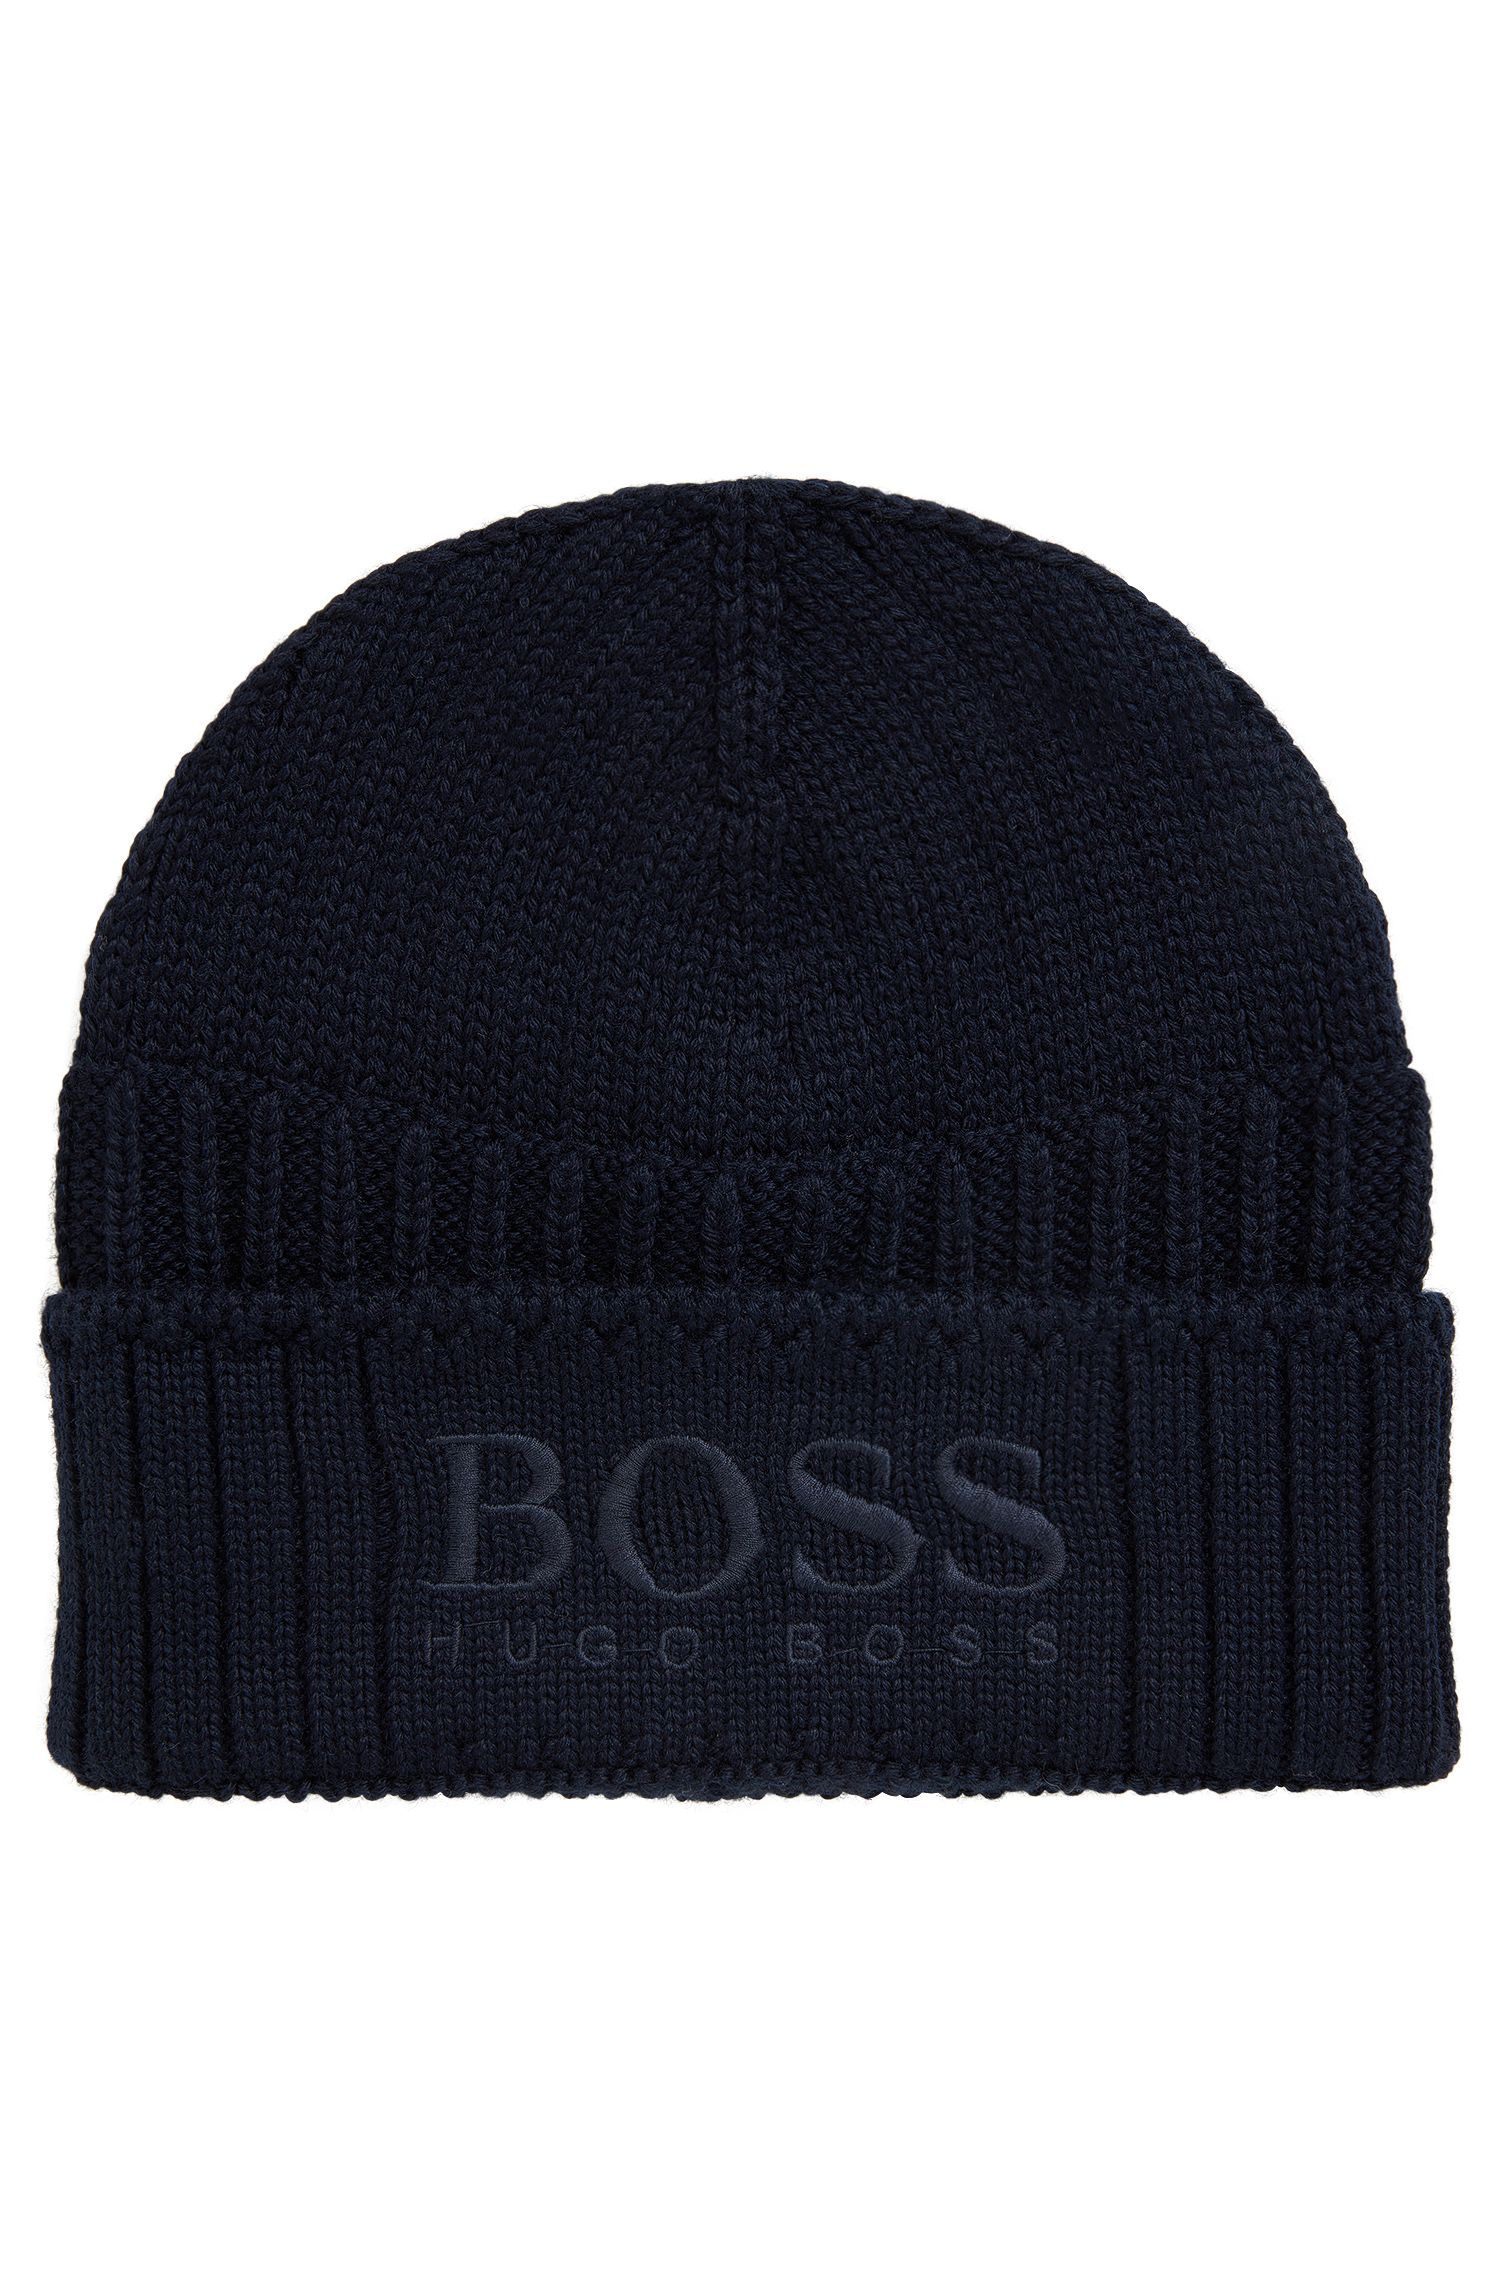 Knitted beanie hat with tonal logo